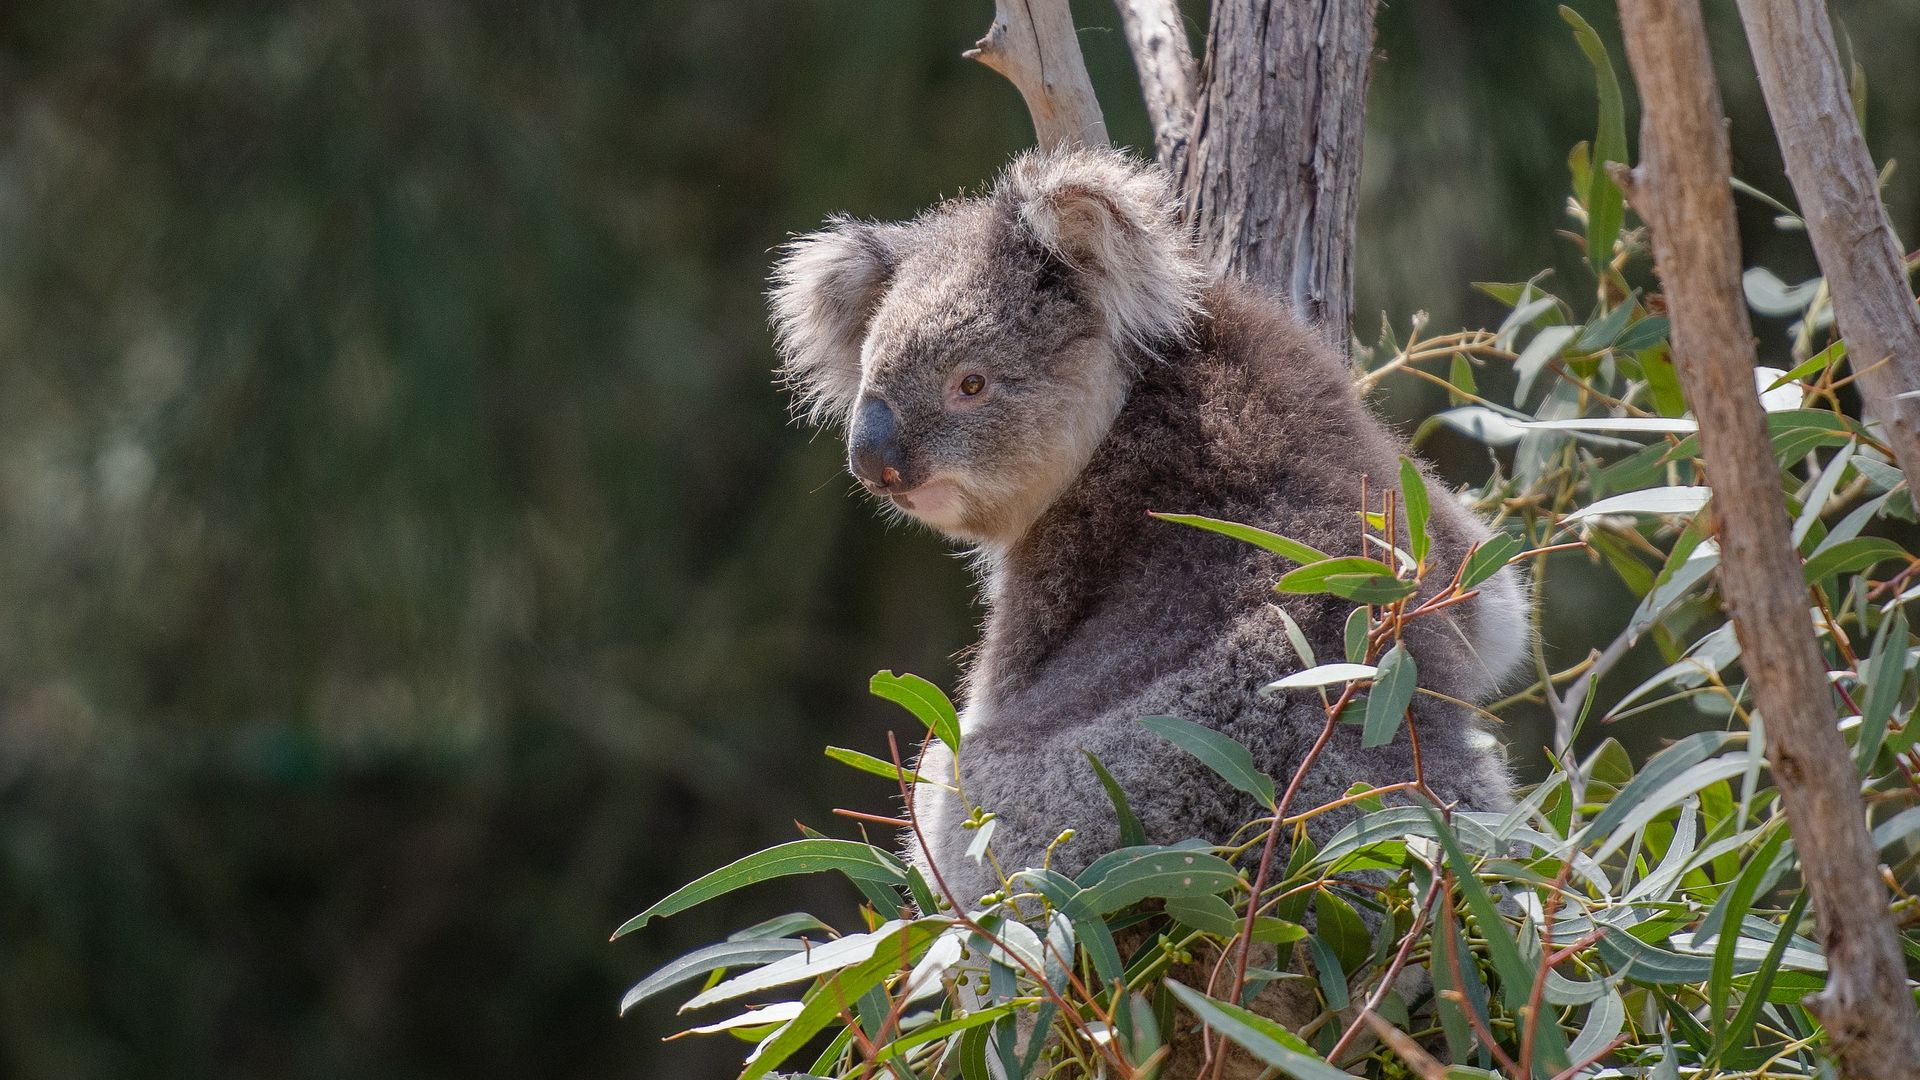 COVID-19, bushfires and drought prove wildlife health is one of the emerging challenges of our time